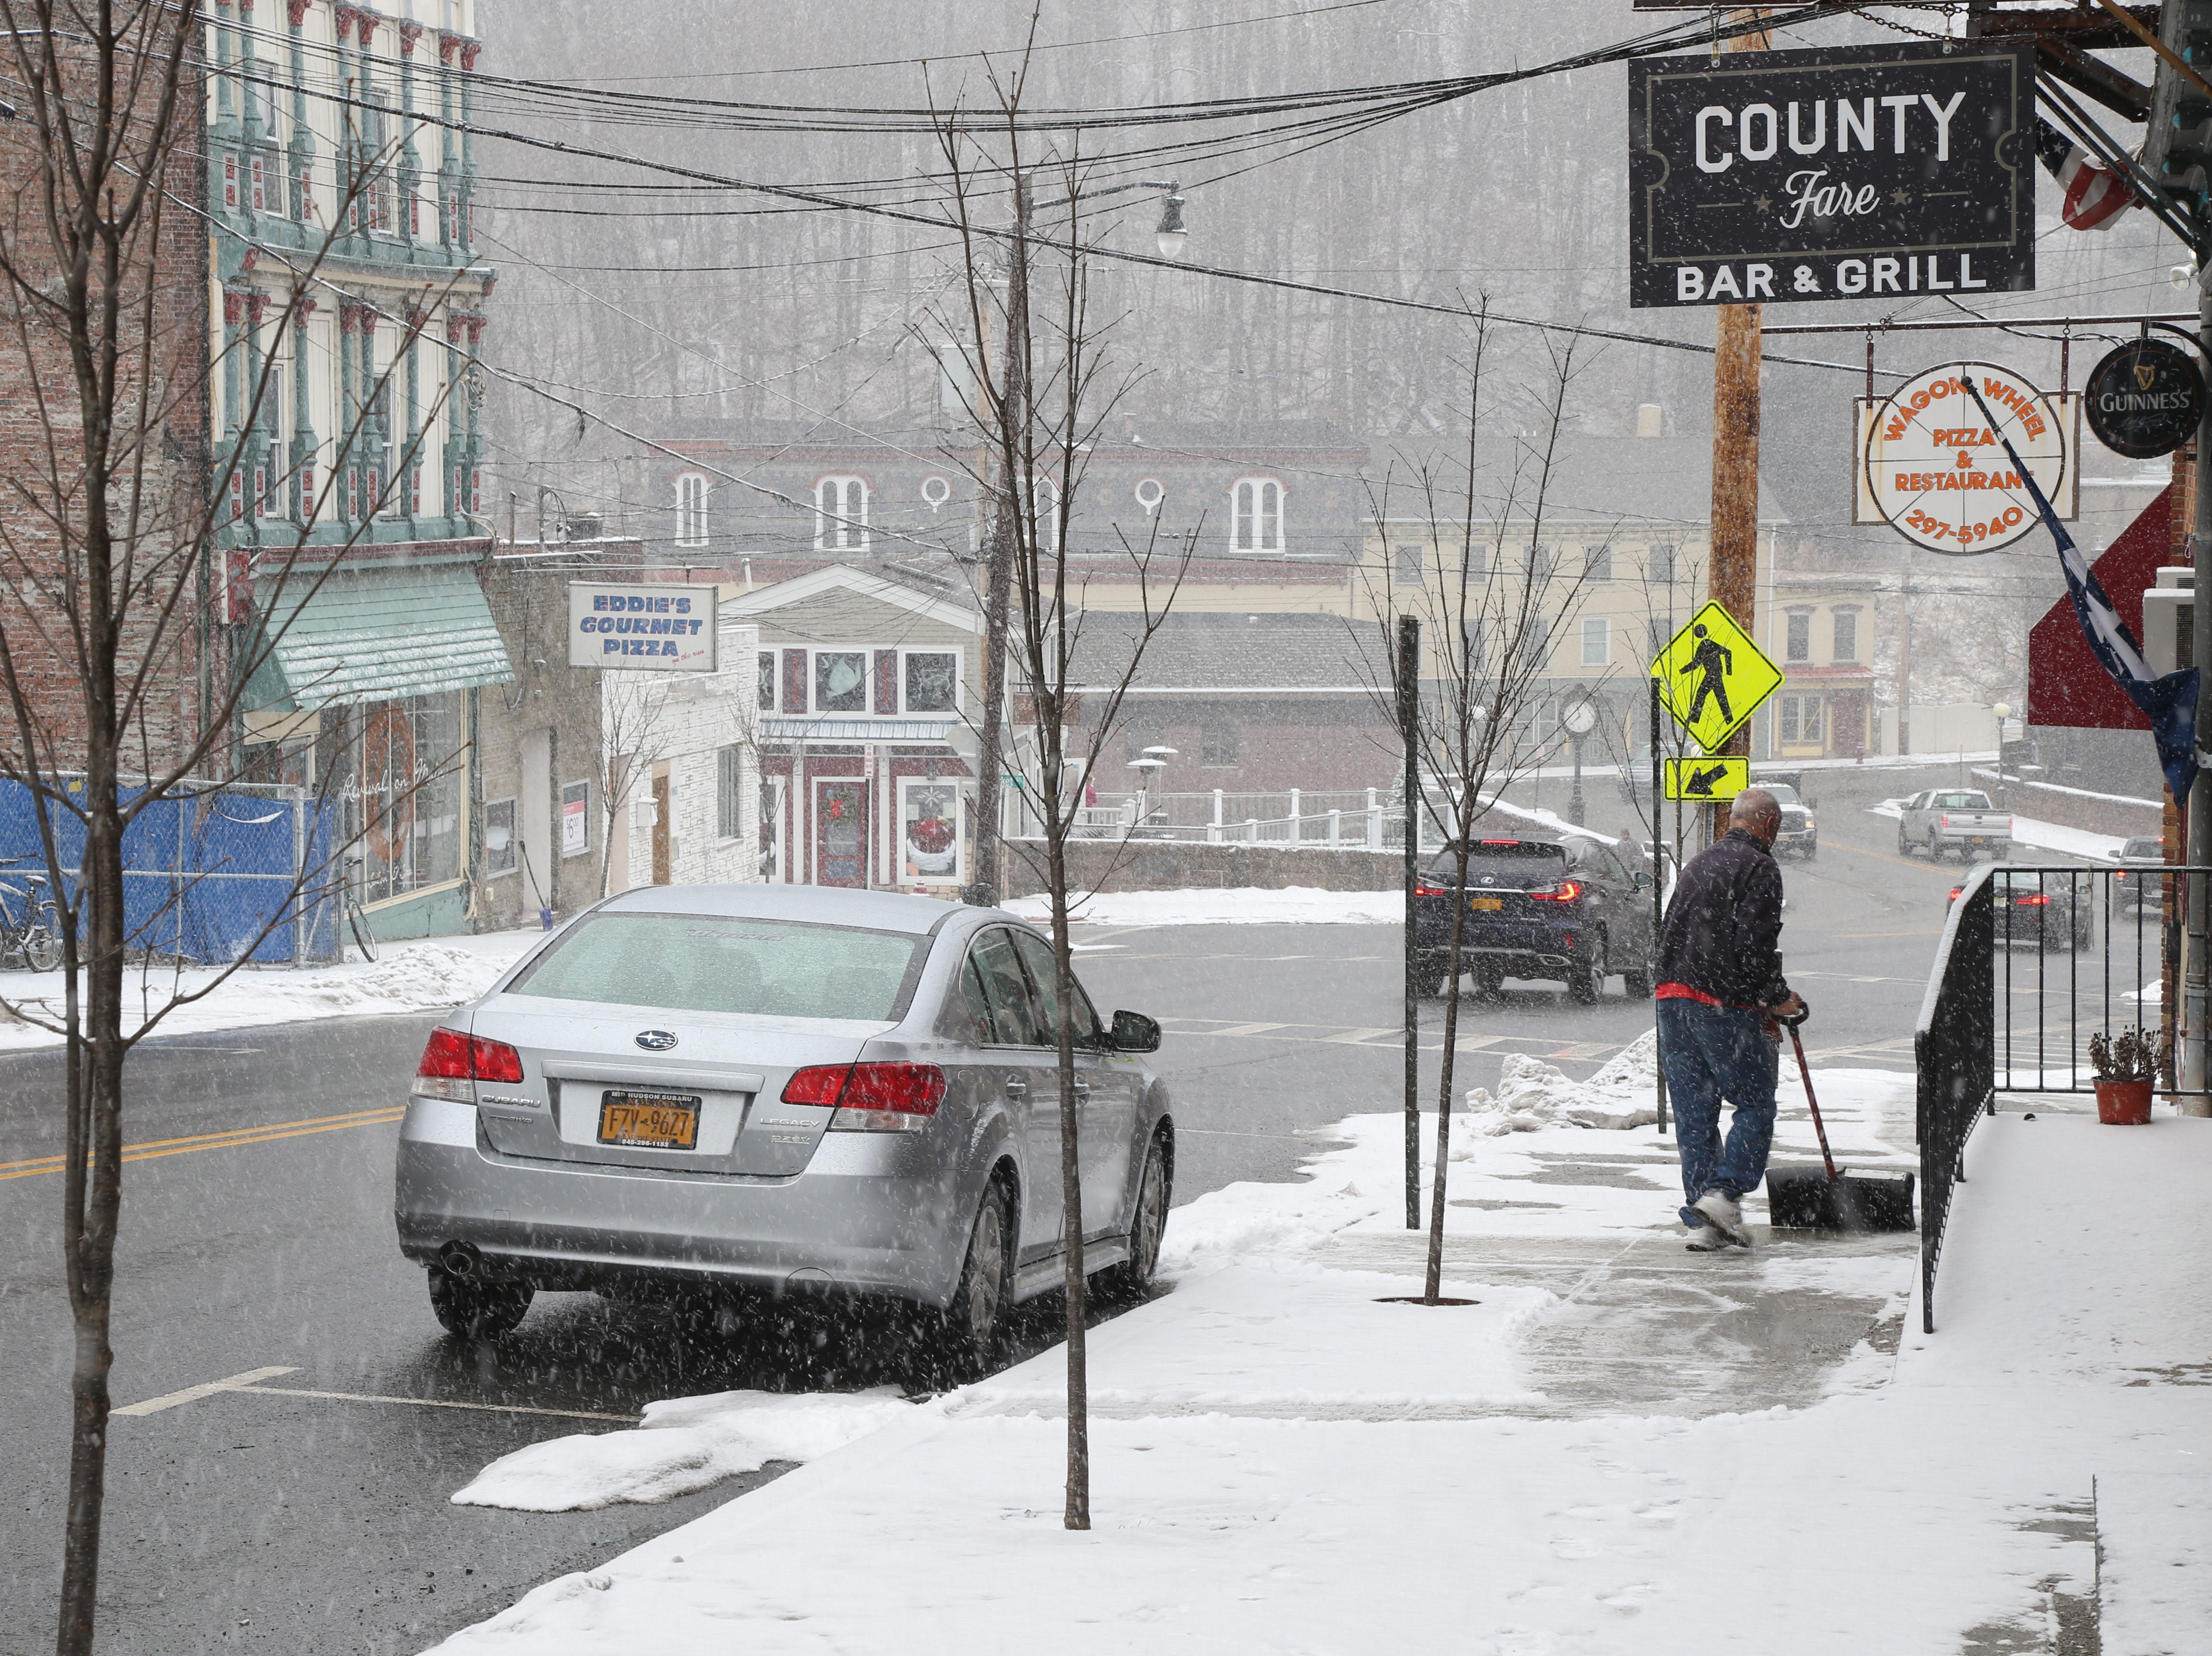 Traffic travels north along East Main Street as shop owners clear the sidewalks in Wappnigers Falls on January 29, 2019.